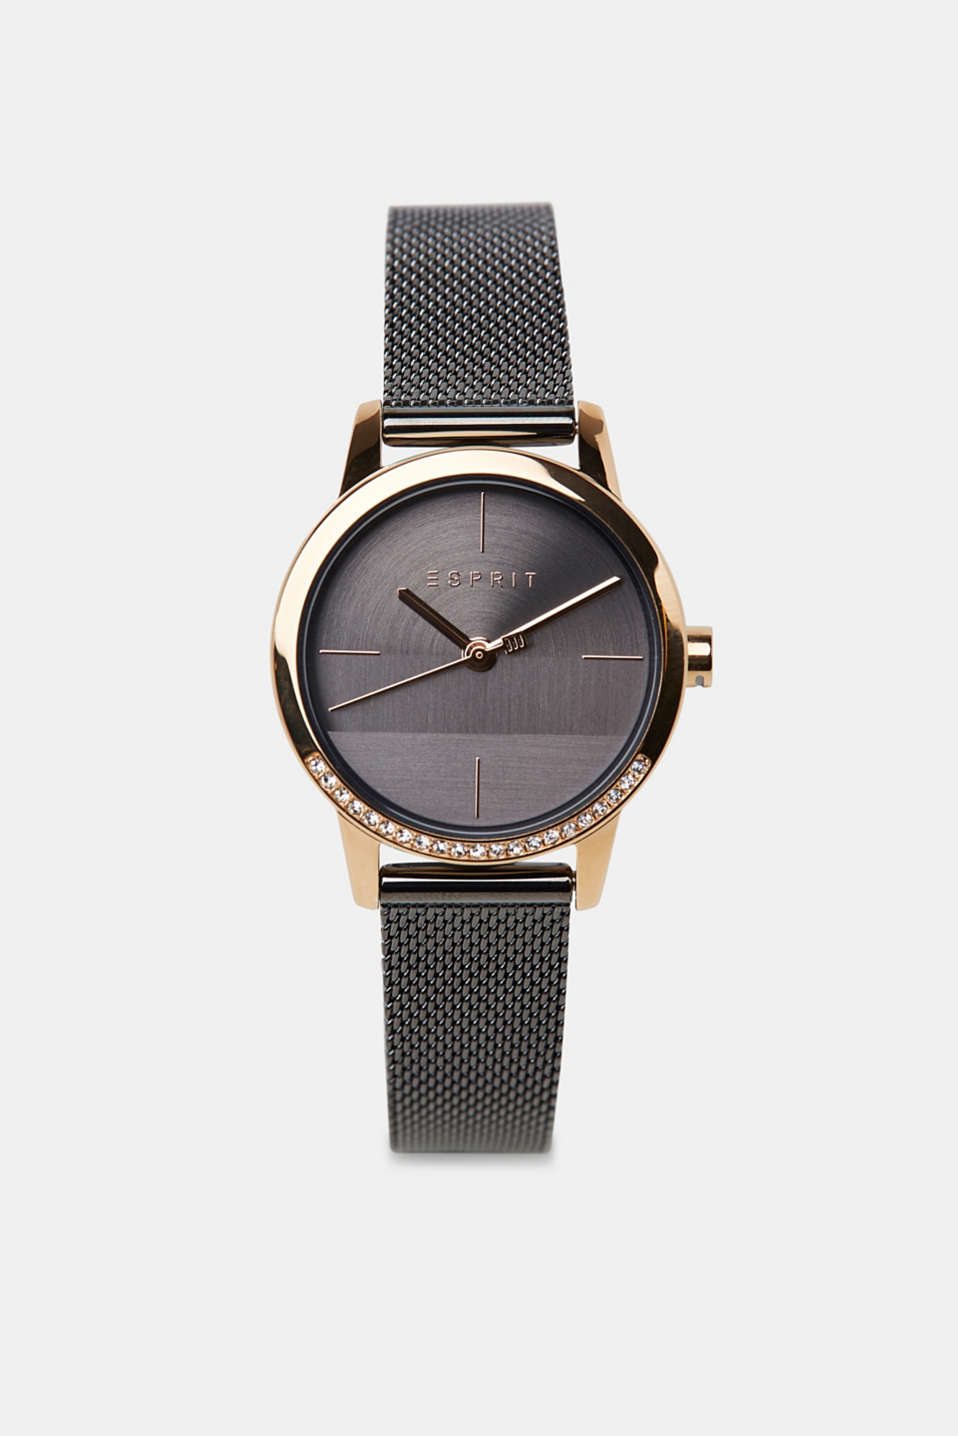 Esprit - Stainless-steel watch with a mesh strap